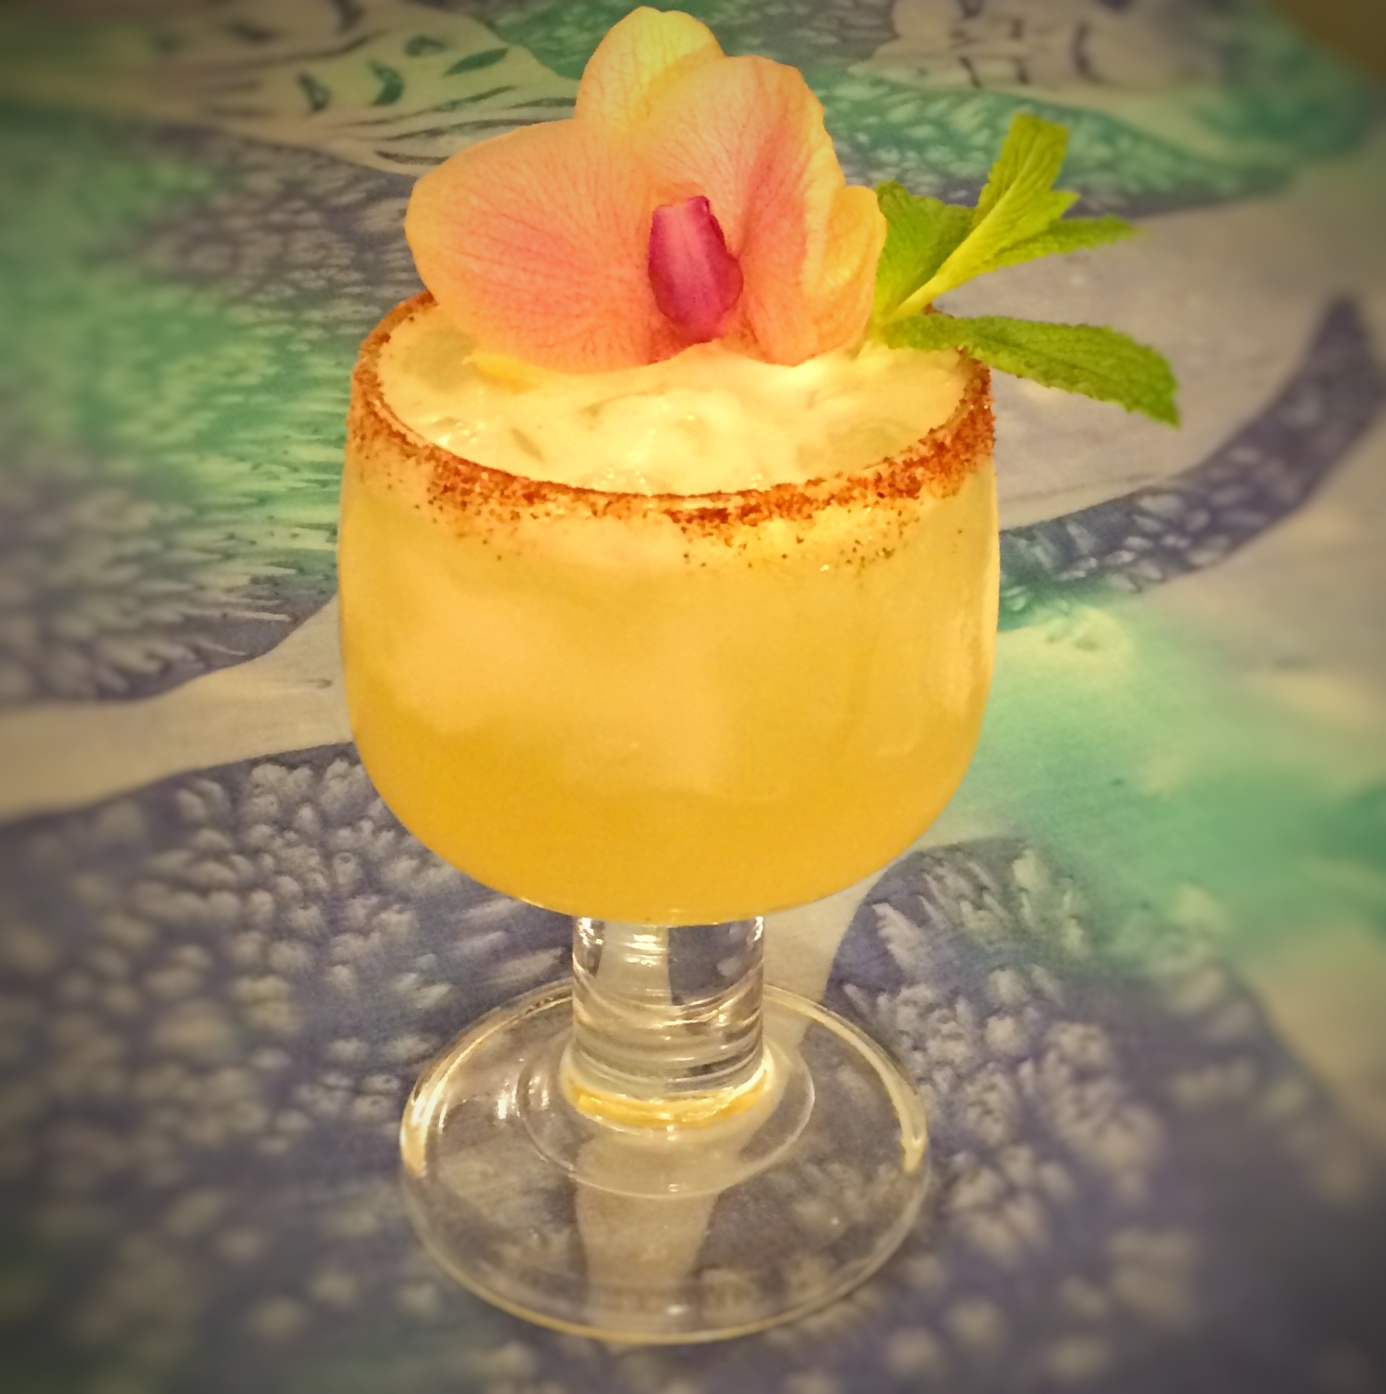 For a Fourth of July cocktail, try Tiki!